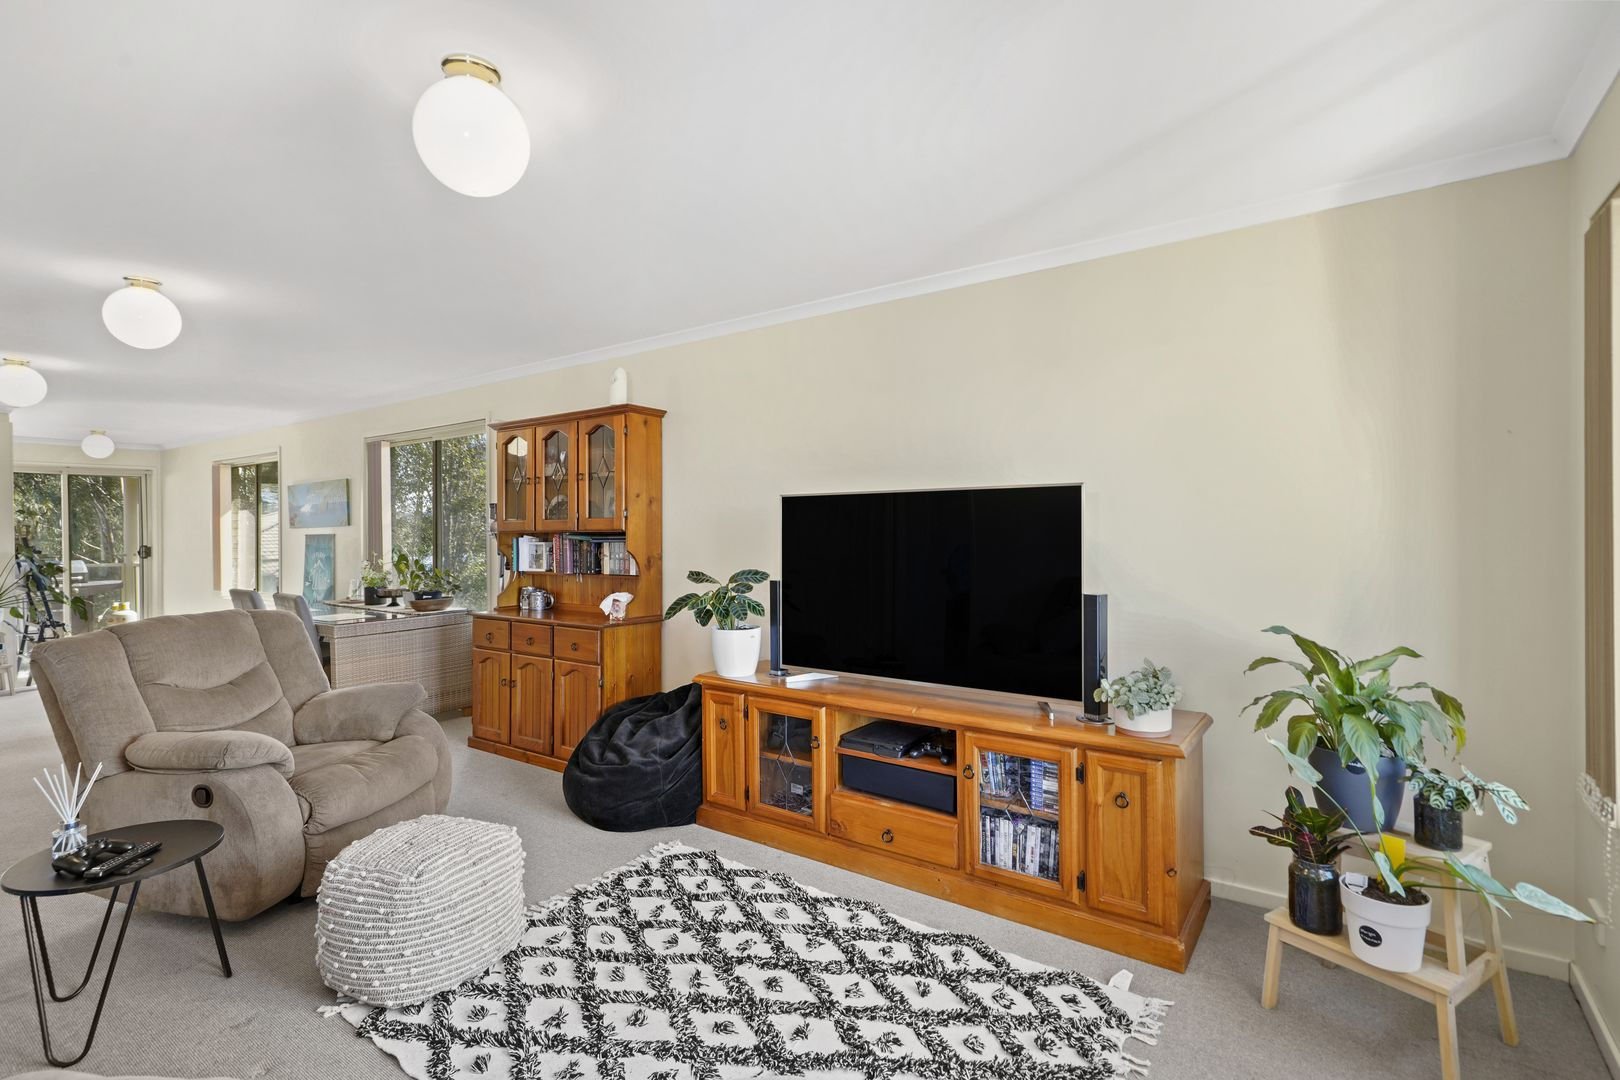 18/8 Lord Place, North Batemans Bay NSW 2536, Image 1